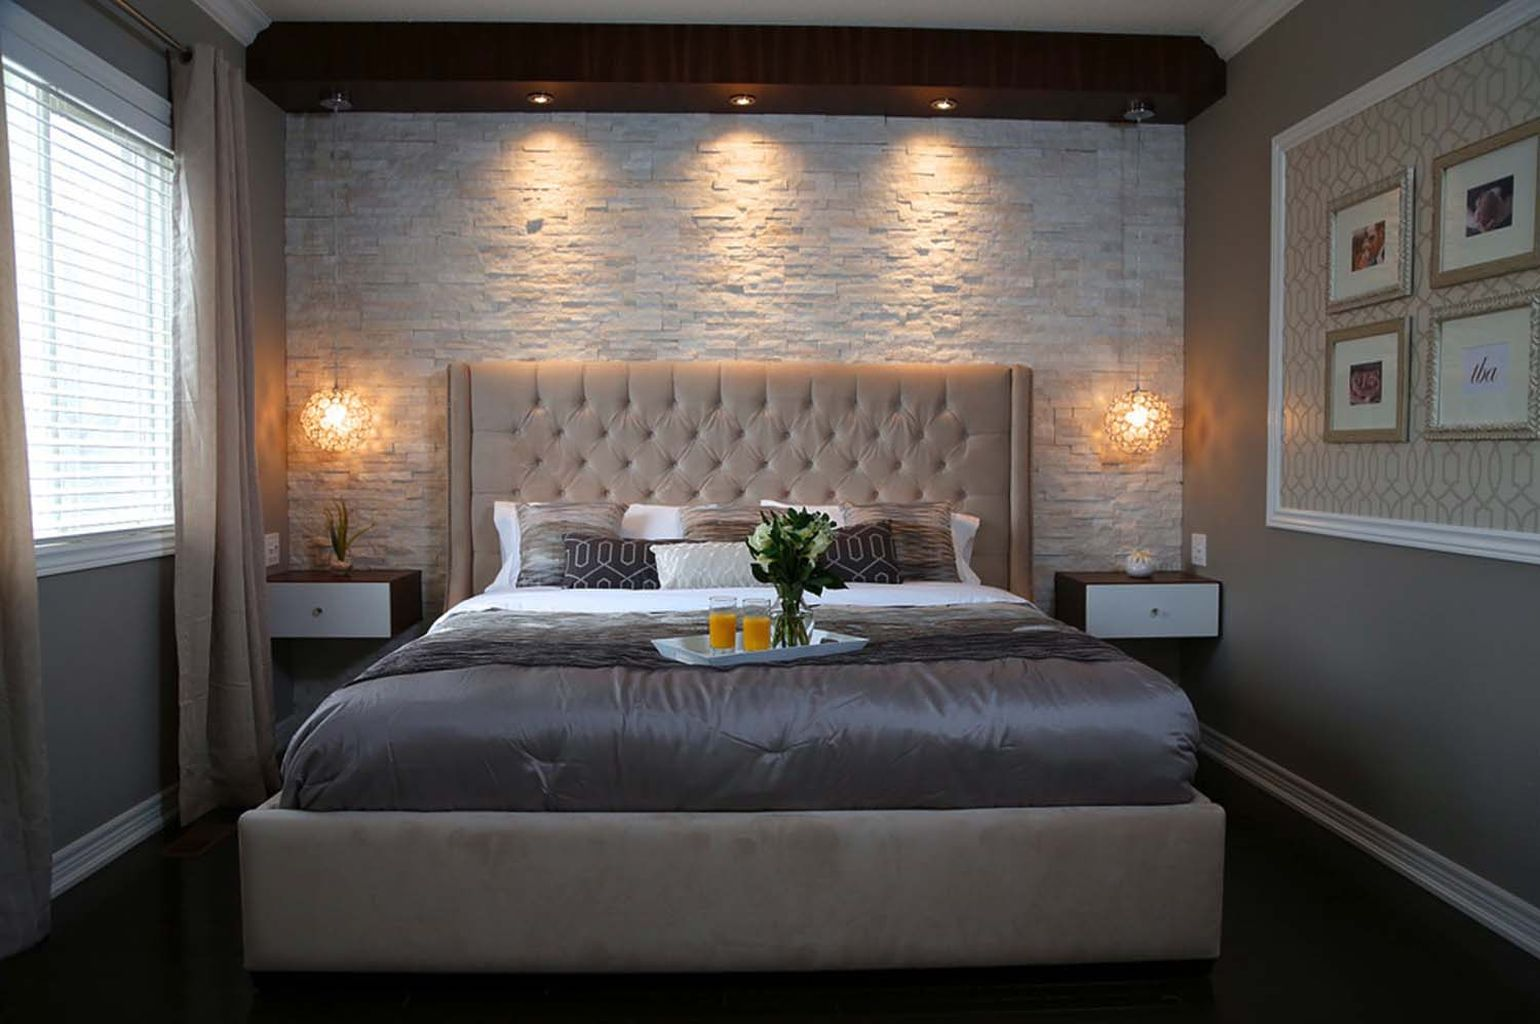 Inexpensive Romantic Bedroom Design Ideas You Will Totally Love 63